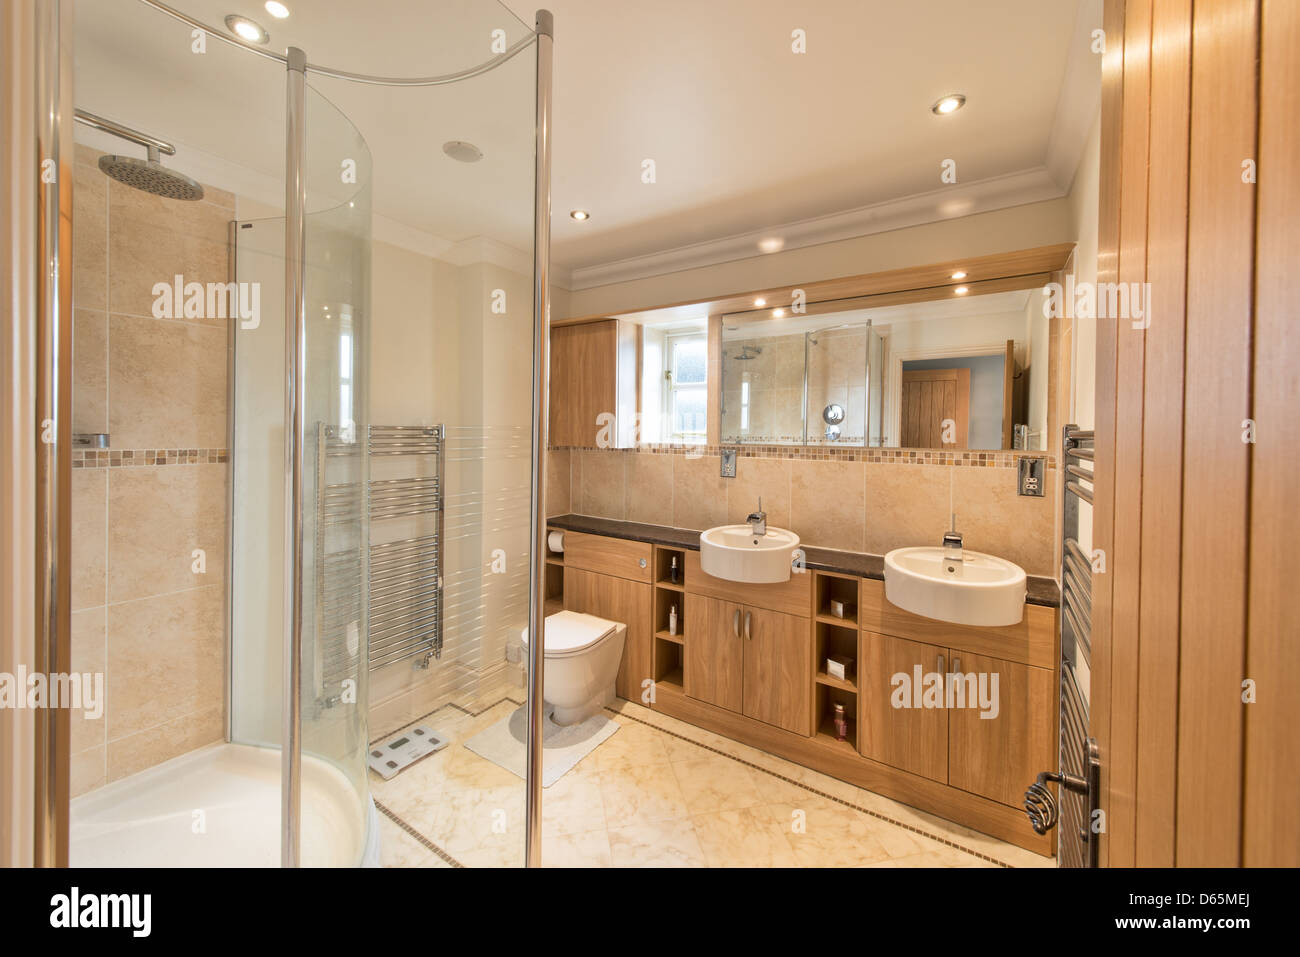 Shower Cabinets Stock Photos & Shower Cabinets Stock Images - Alamy